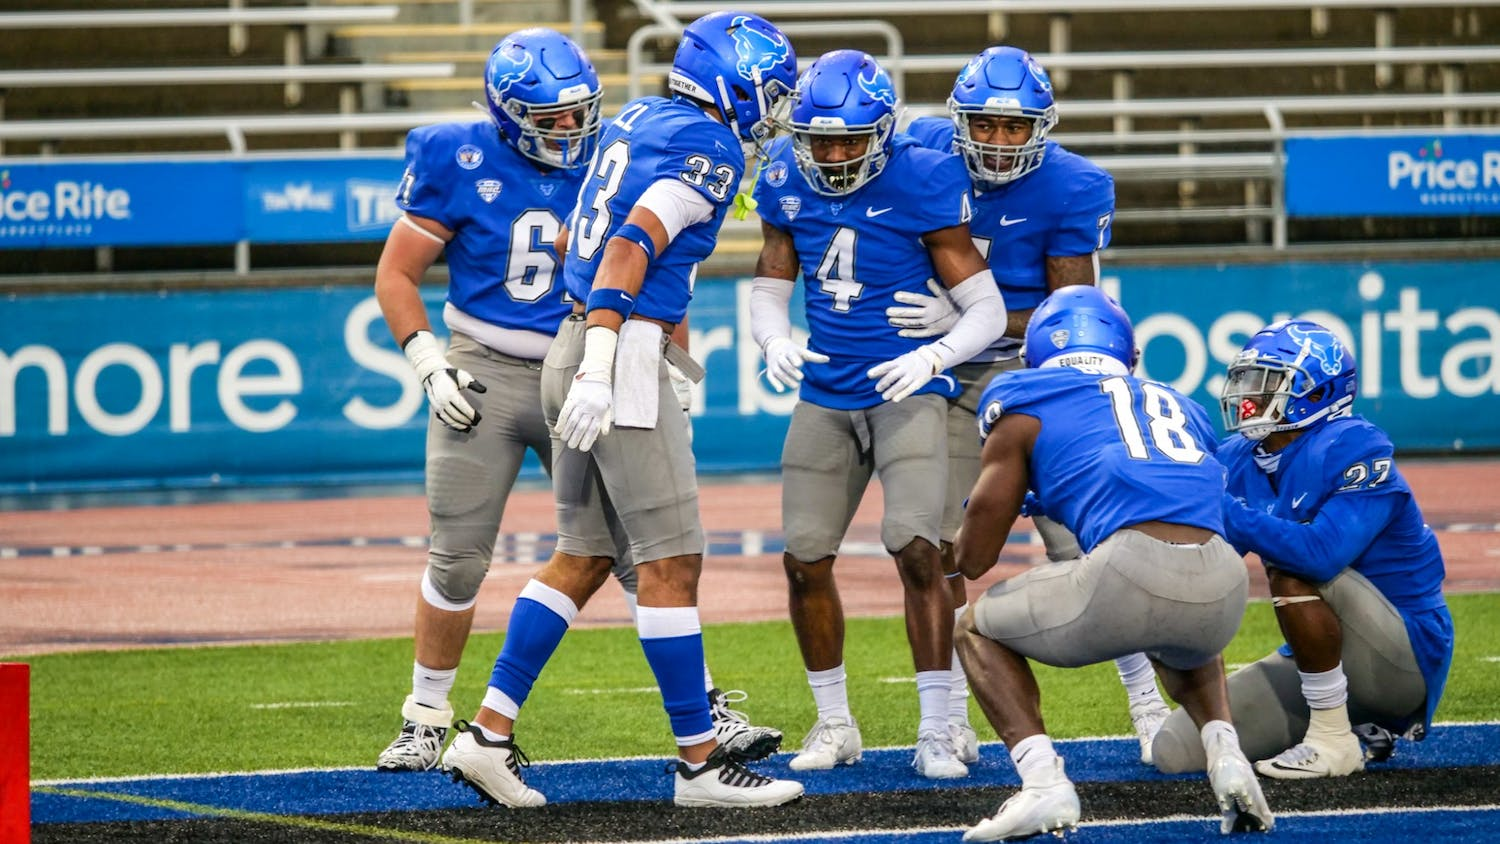 UB hopes to play a full 12-game schedule in 2021, after COVID shortened its 2020 slate.